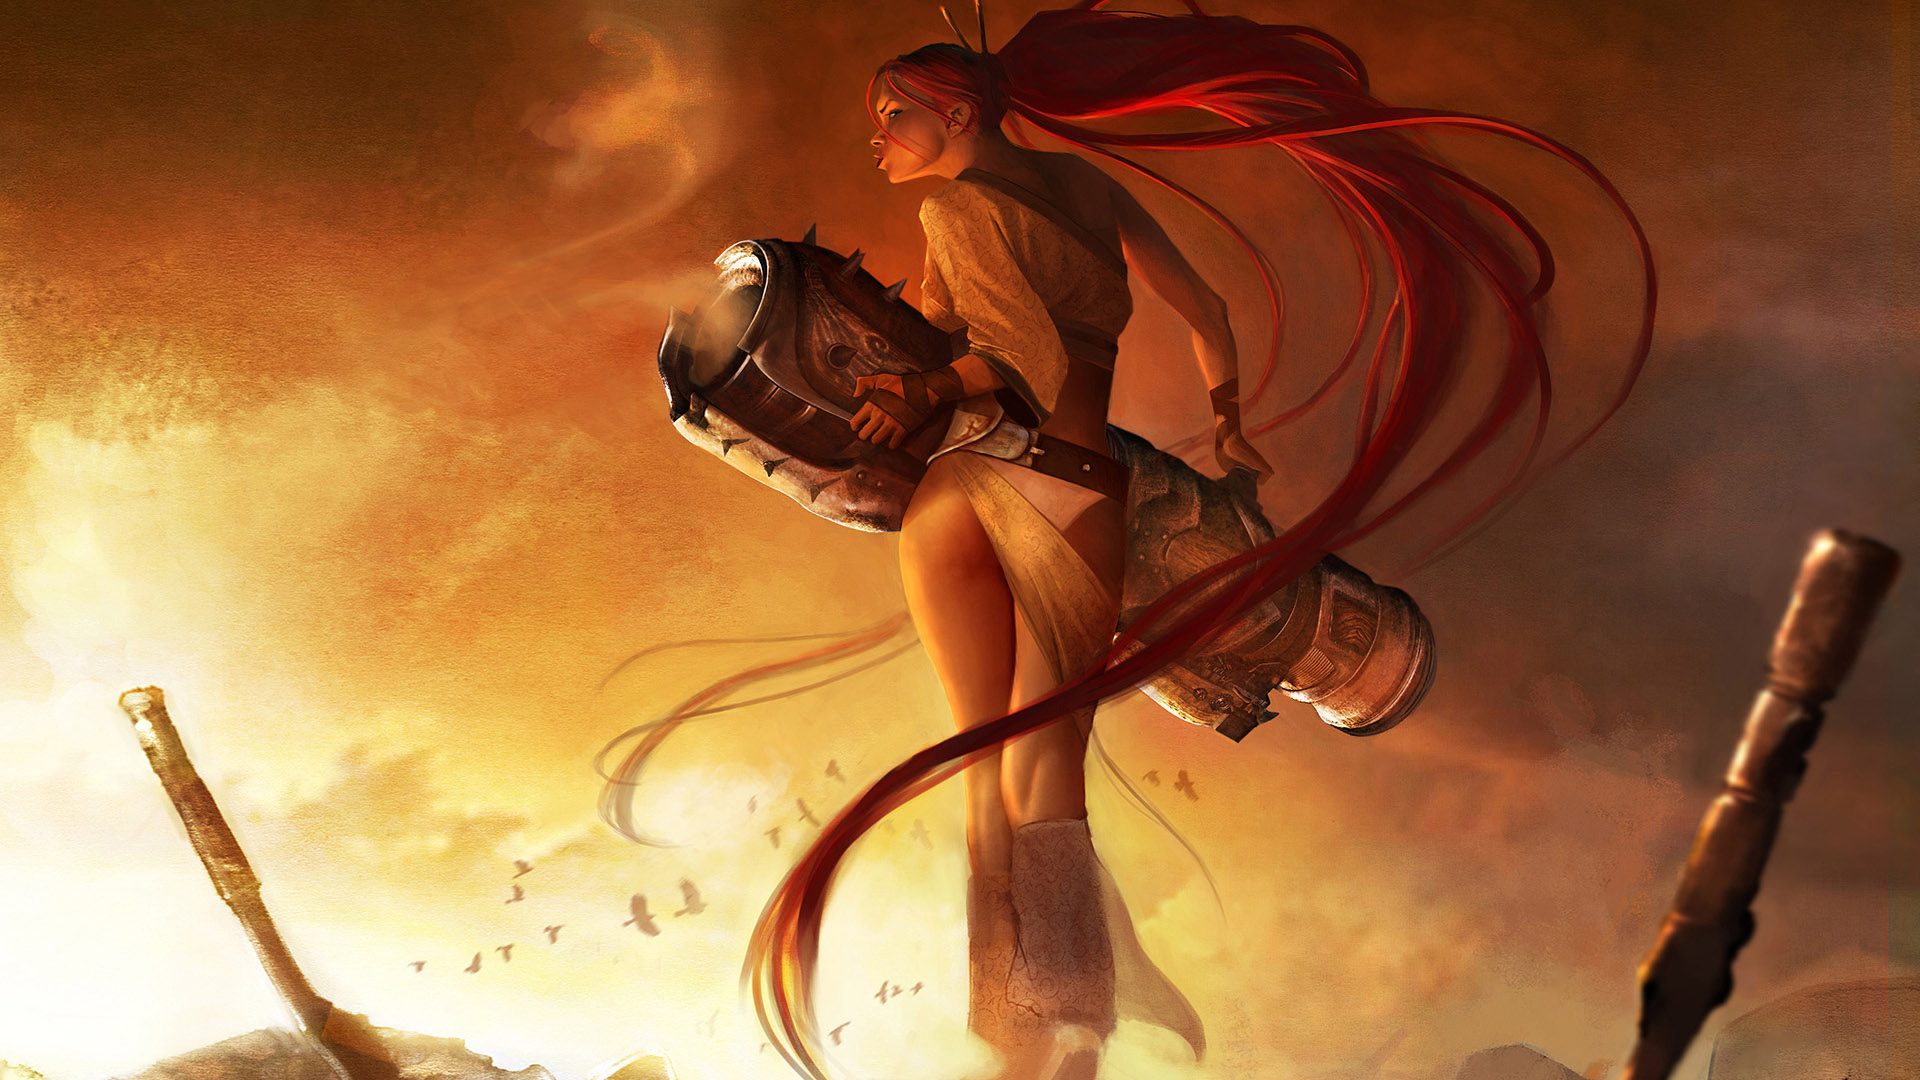 Sorry, Girl from heavenly sword naked valuable answer